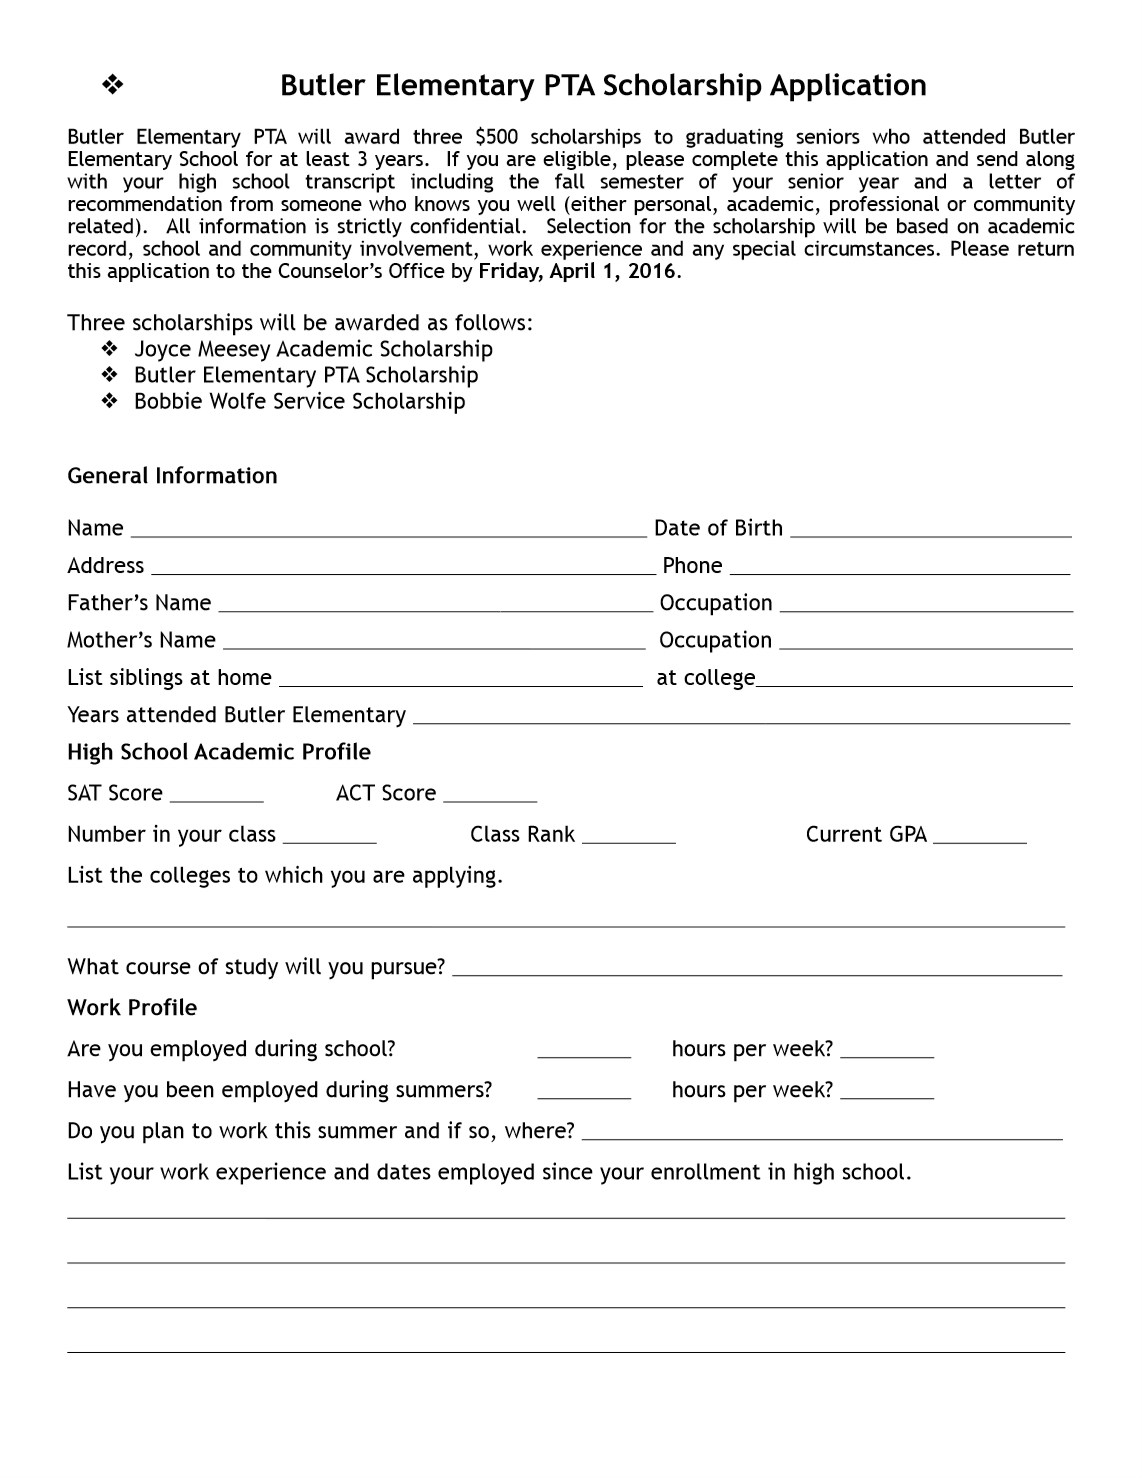 generic scholarship application form 2015-2016 Butler Elementary PTA Scholarships – Butler Elementary PTA